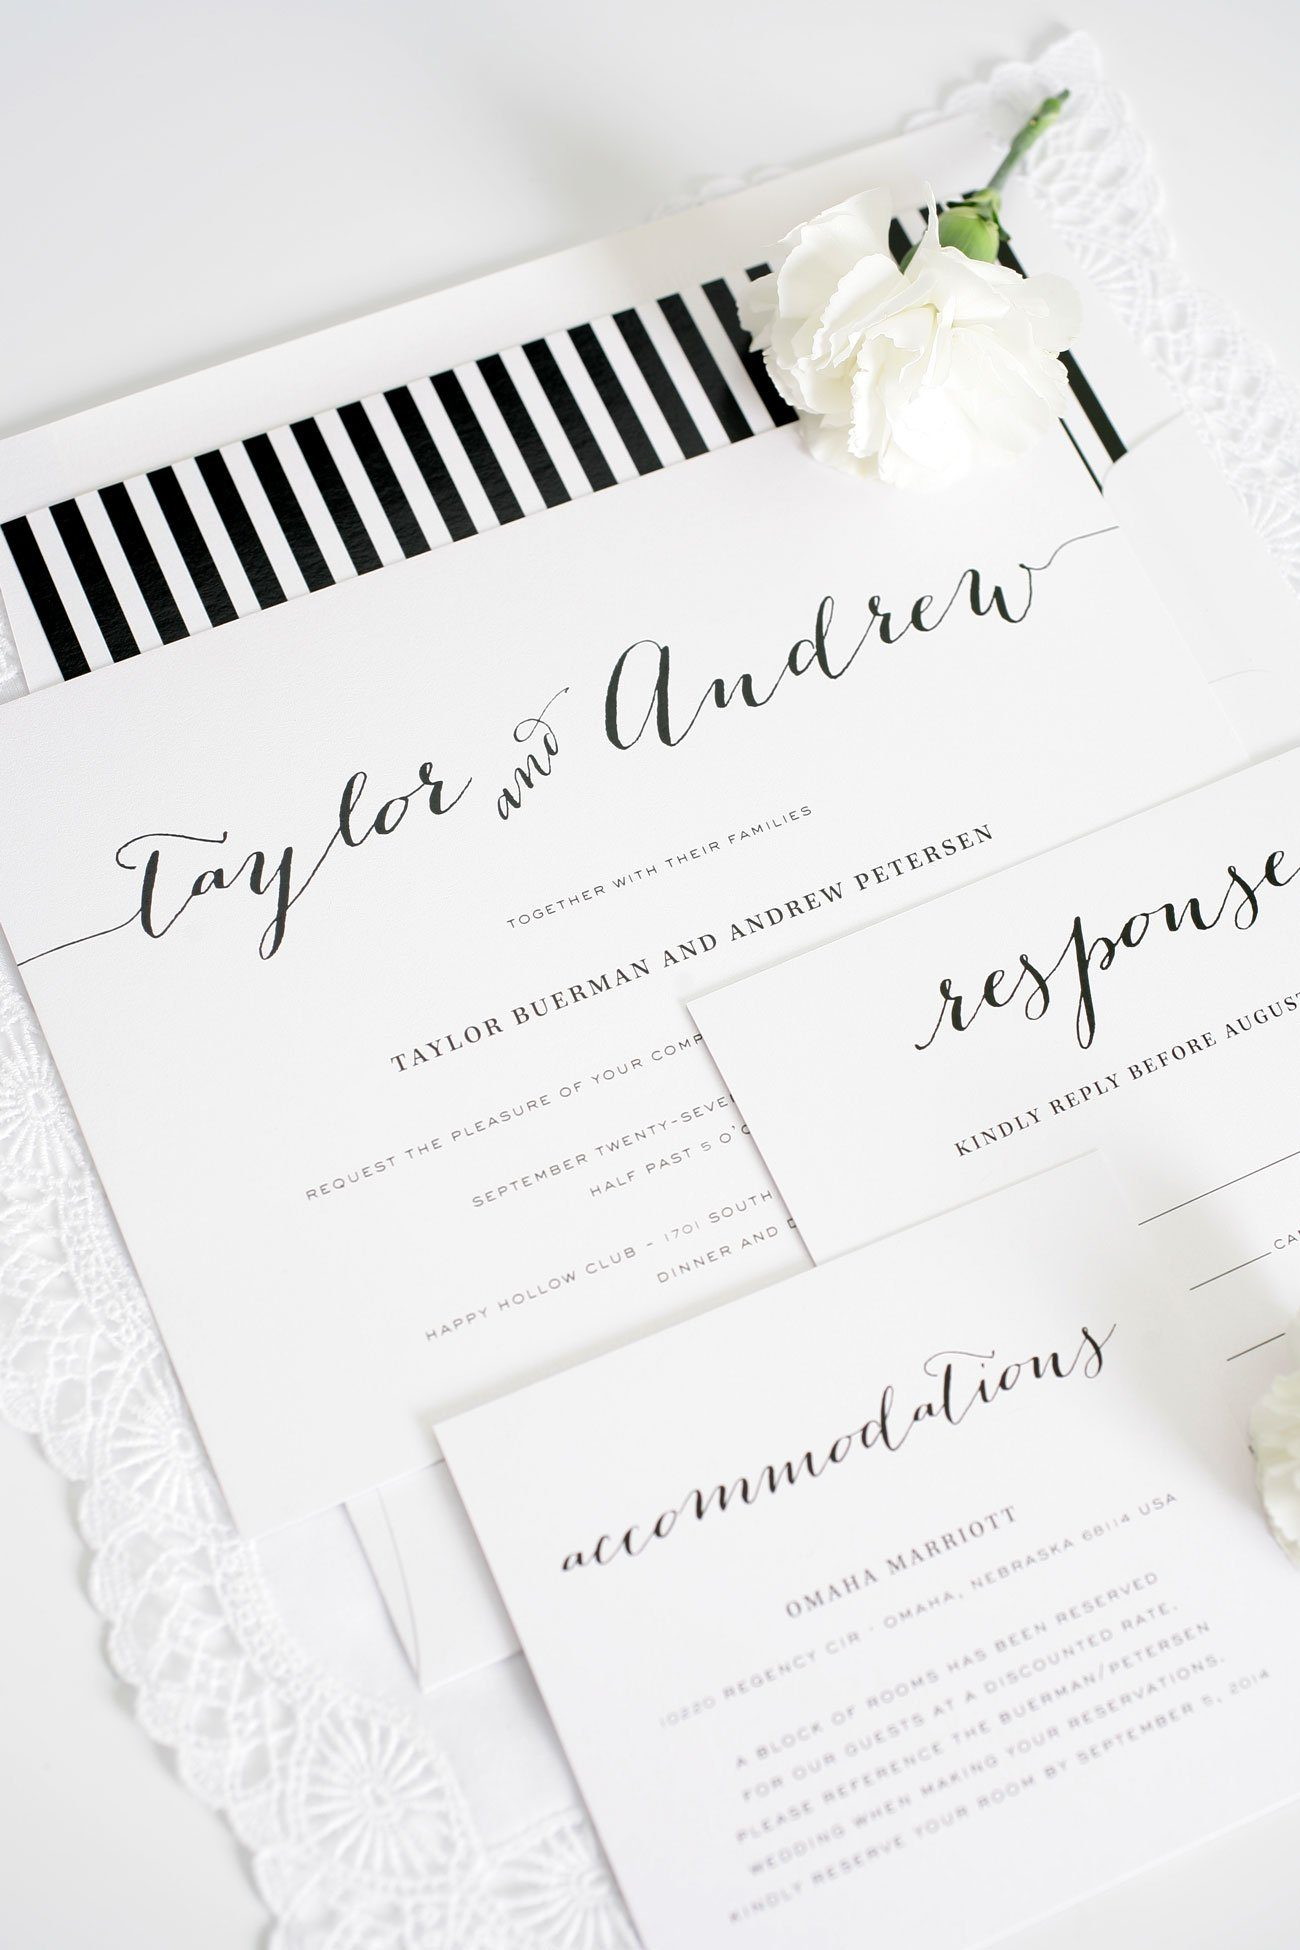 Whimsy black and white striped wedding invitations